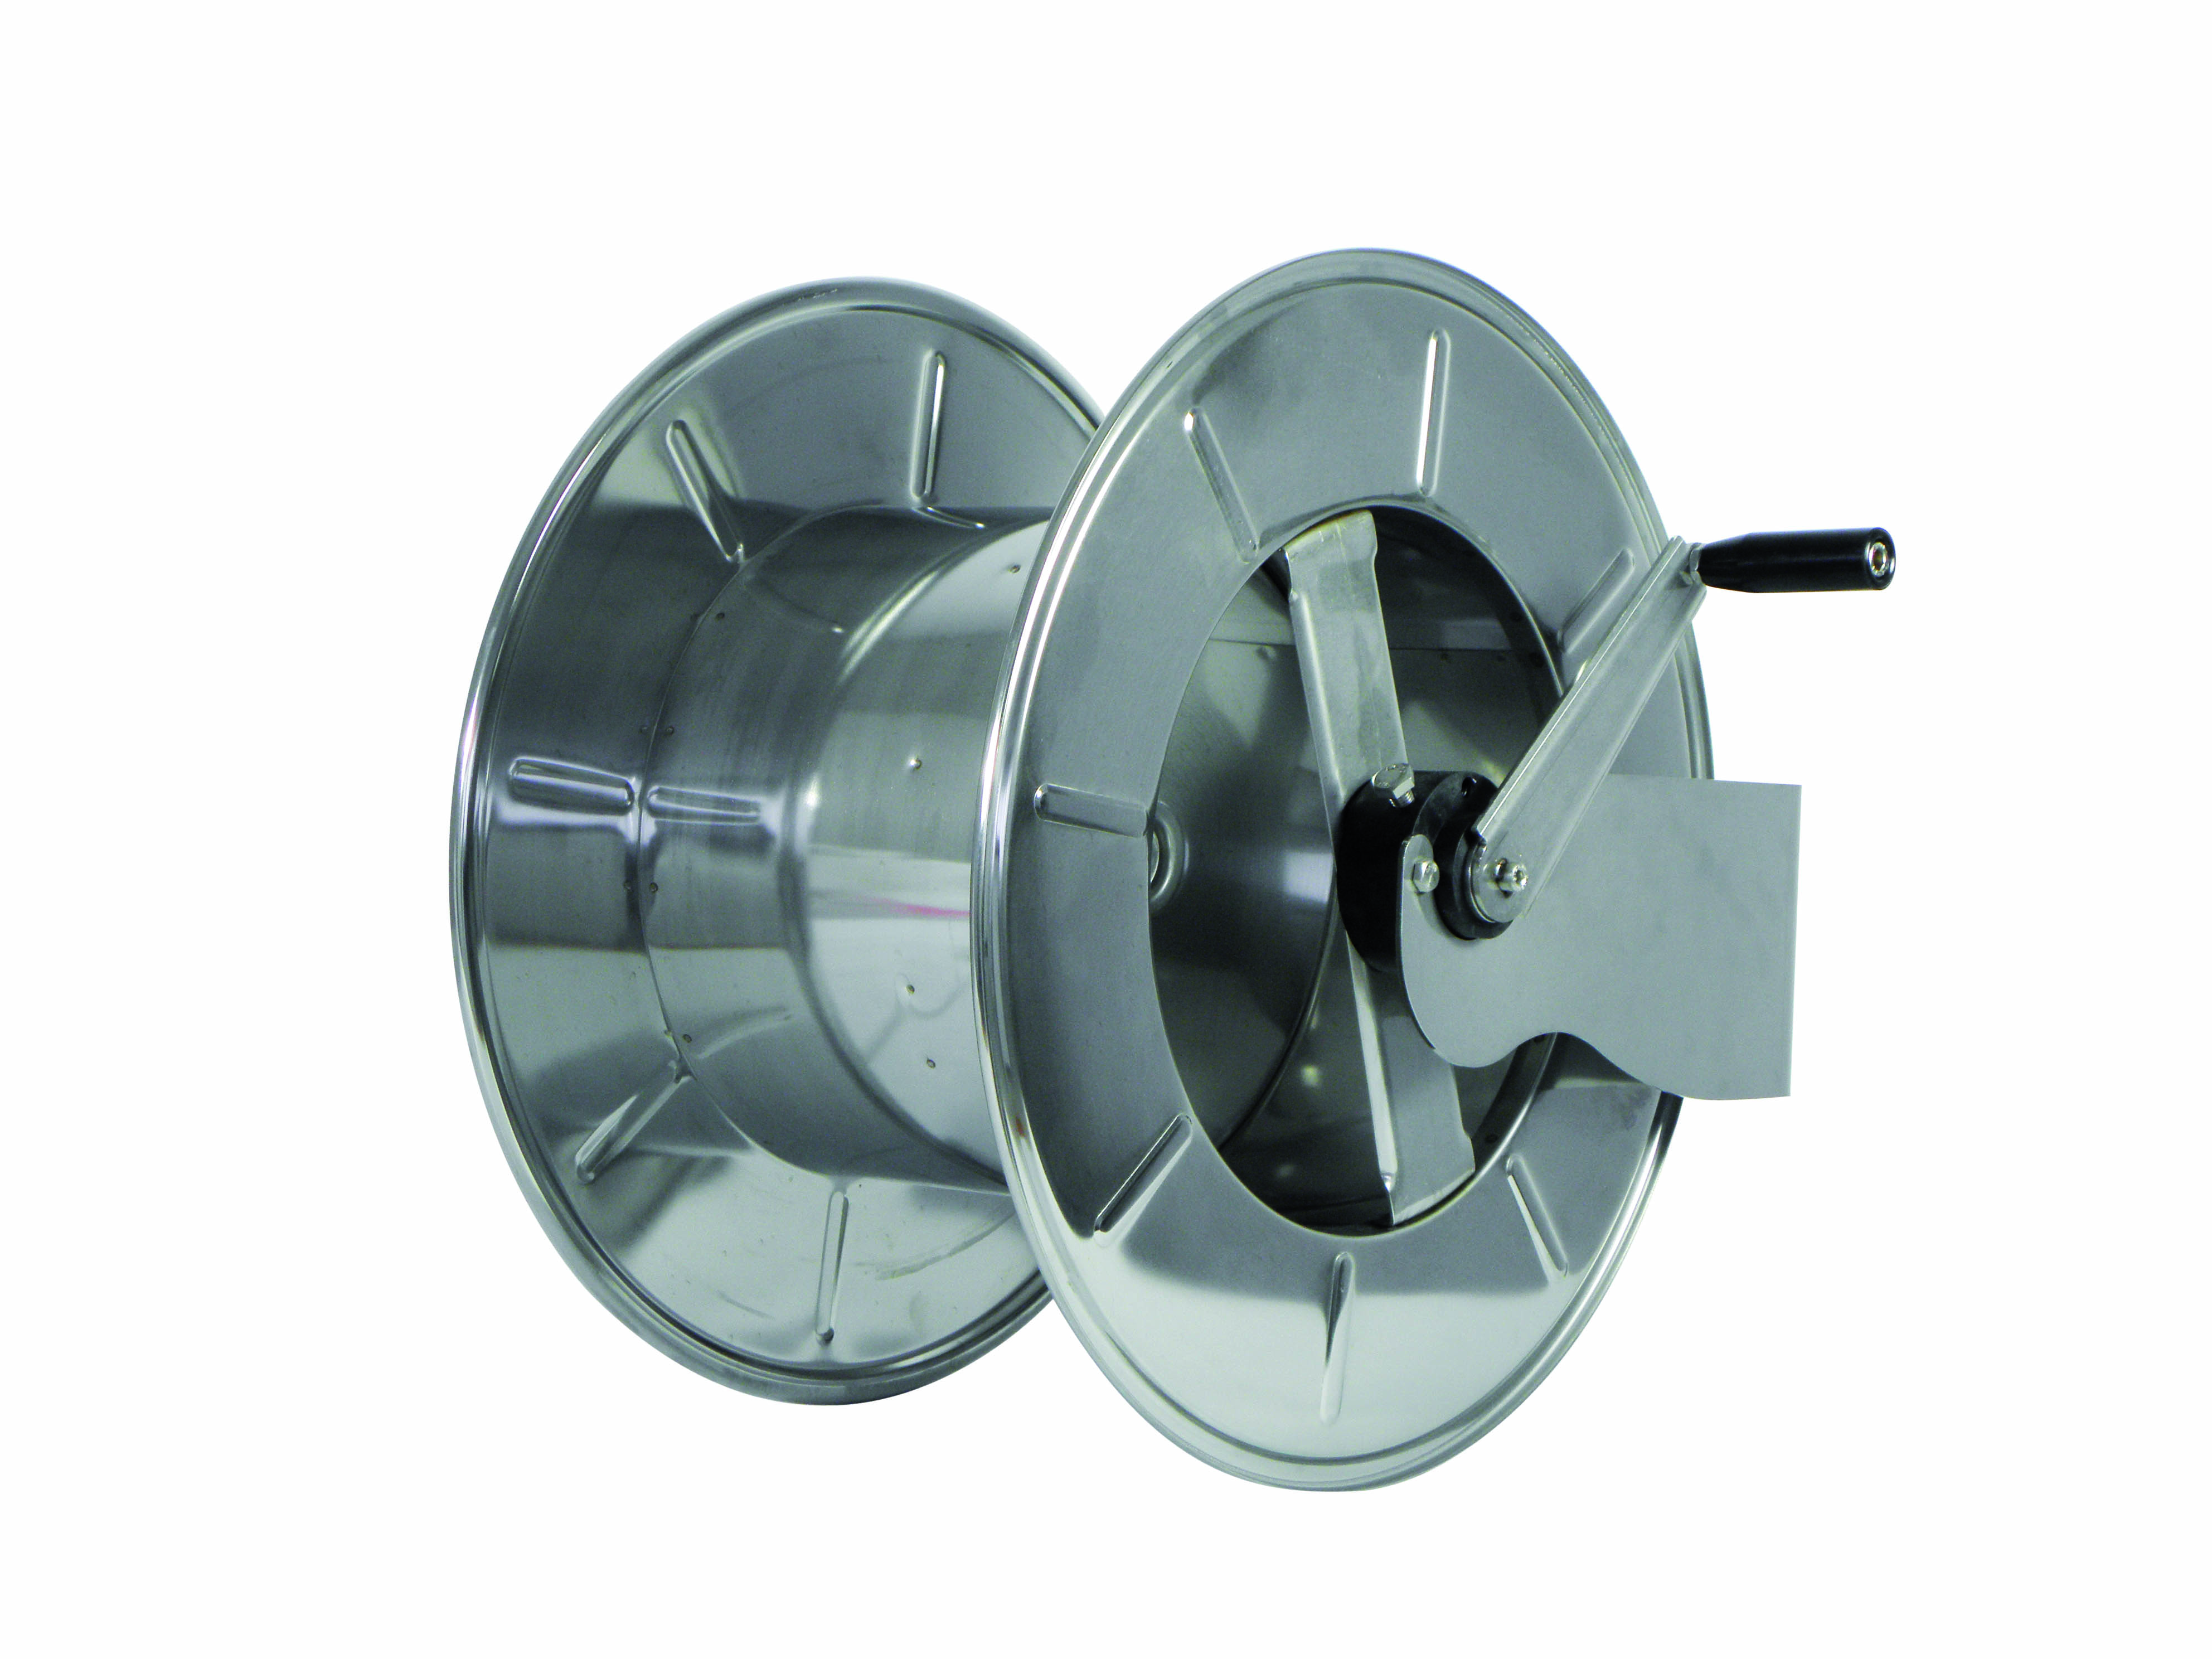 AVM9941 - Hose reels for Water - High Flow 0-80 BAR/ 0-1160 PSI